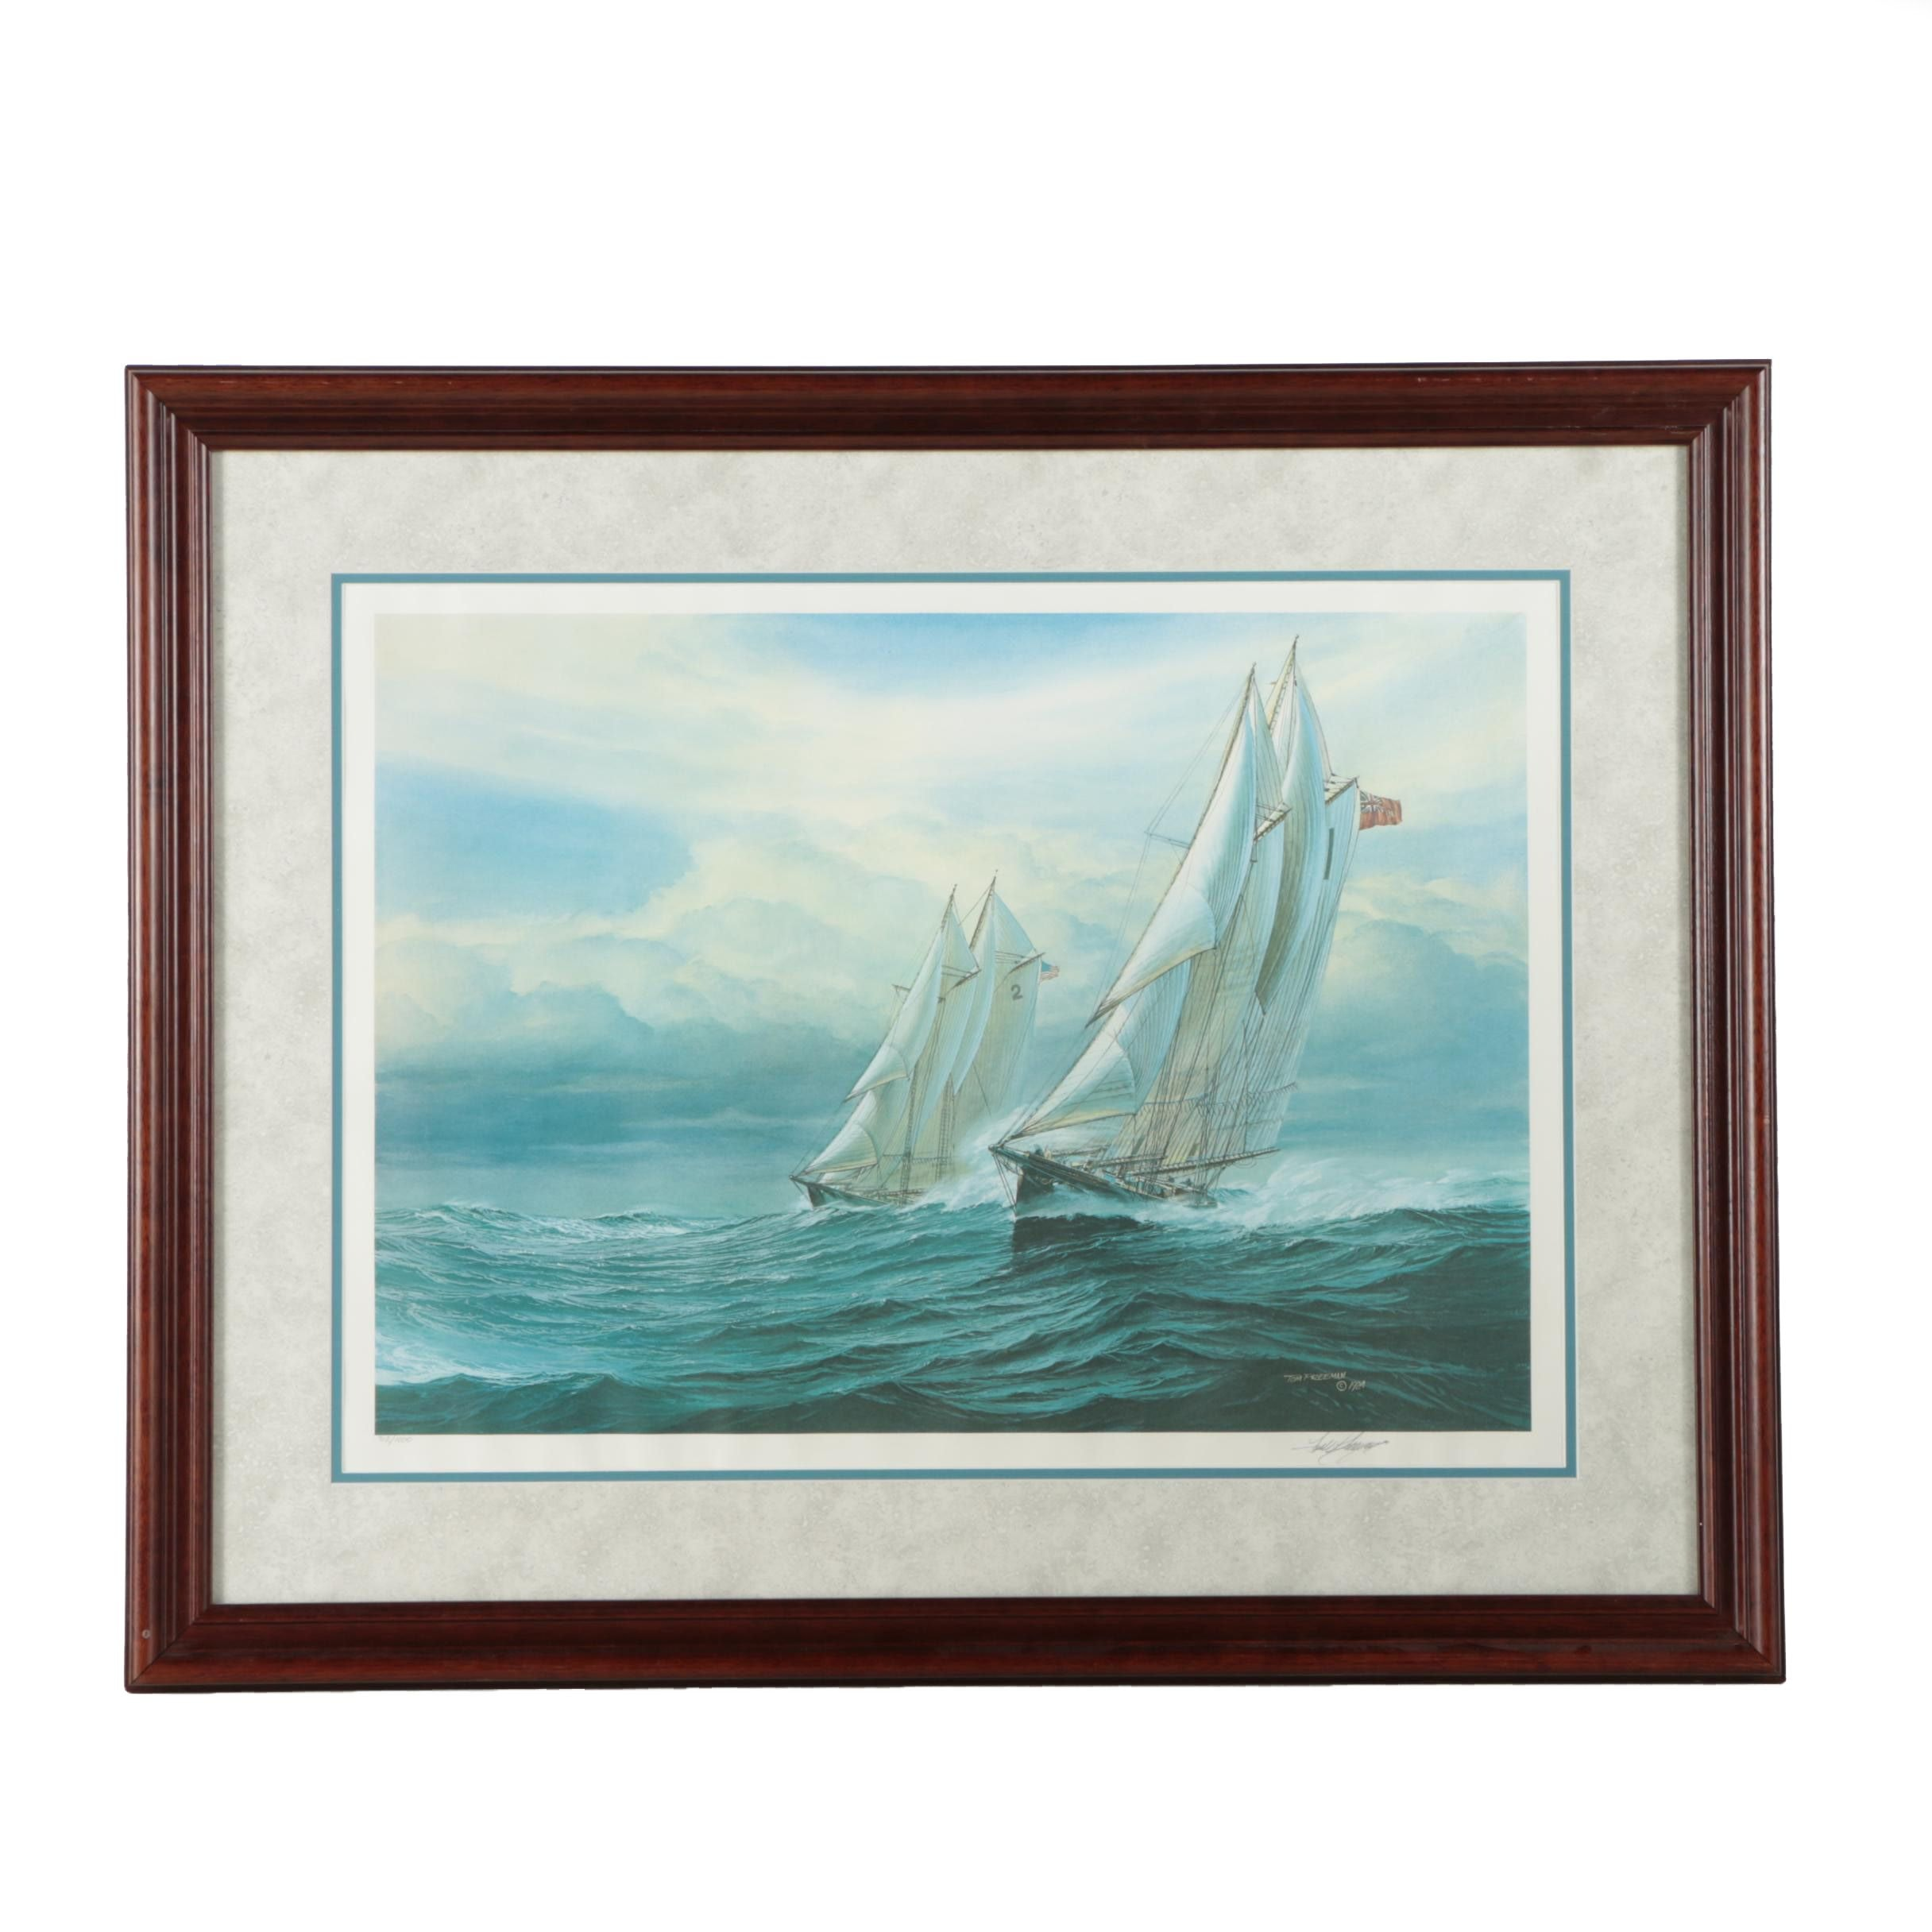 Tom Freeman Limited Edition Offset Lithograph of Ships